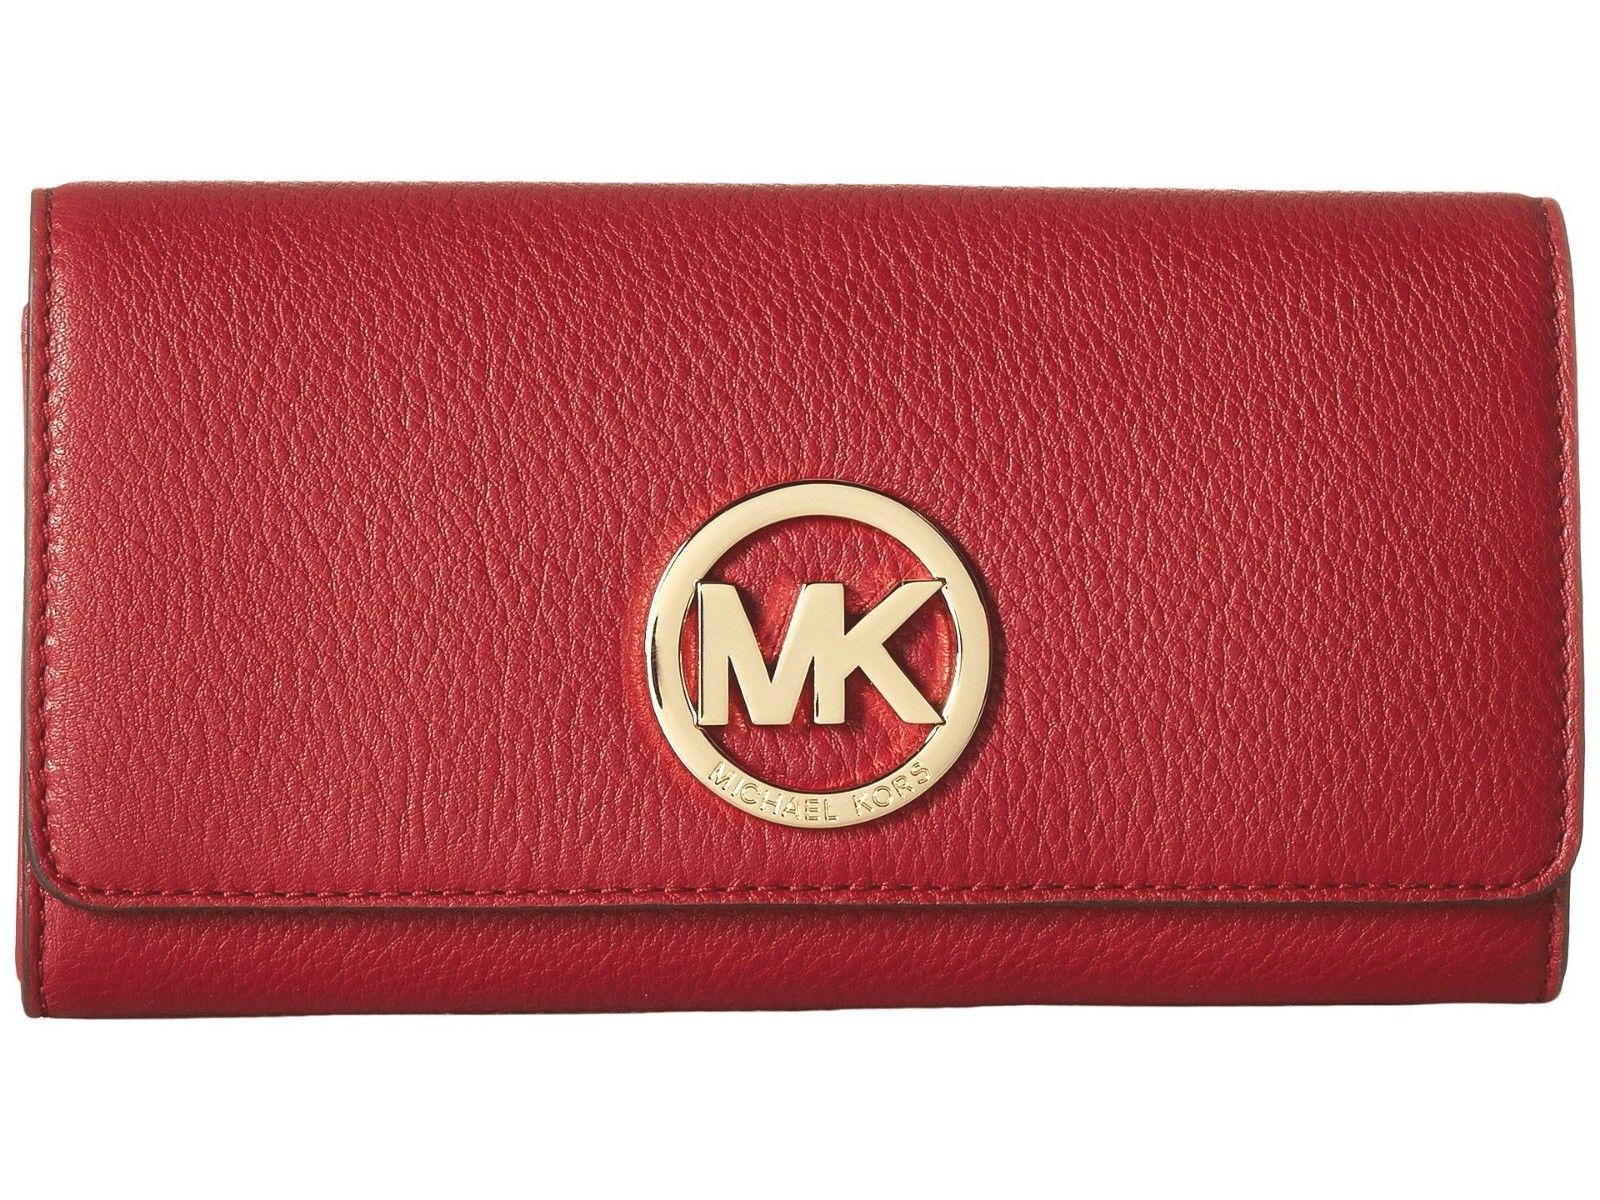 d339979265f2 ... where can i buy michael kors fulton flap continental soft leather wallet  in sienna 158.00 aefdb